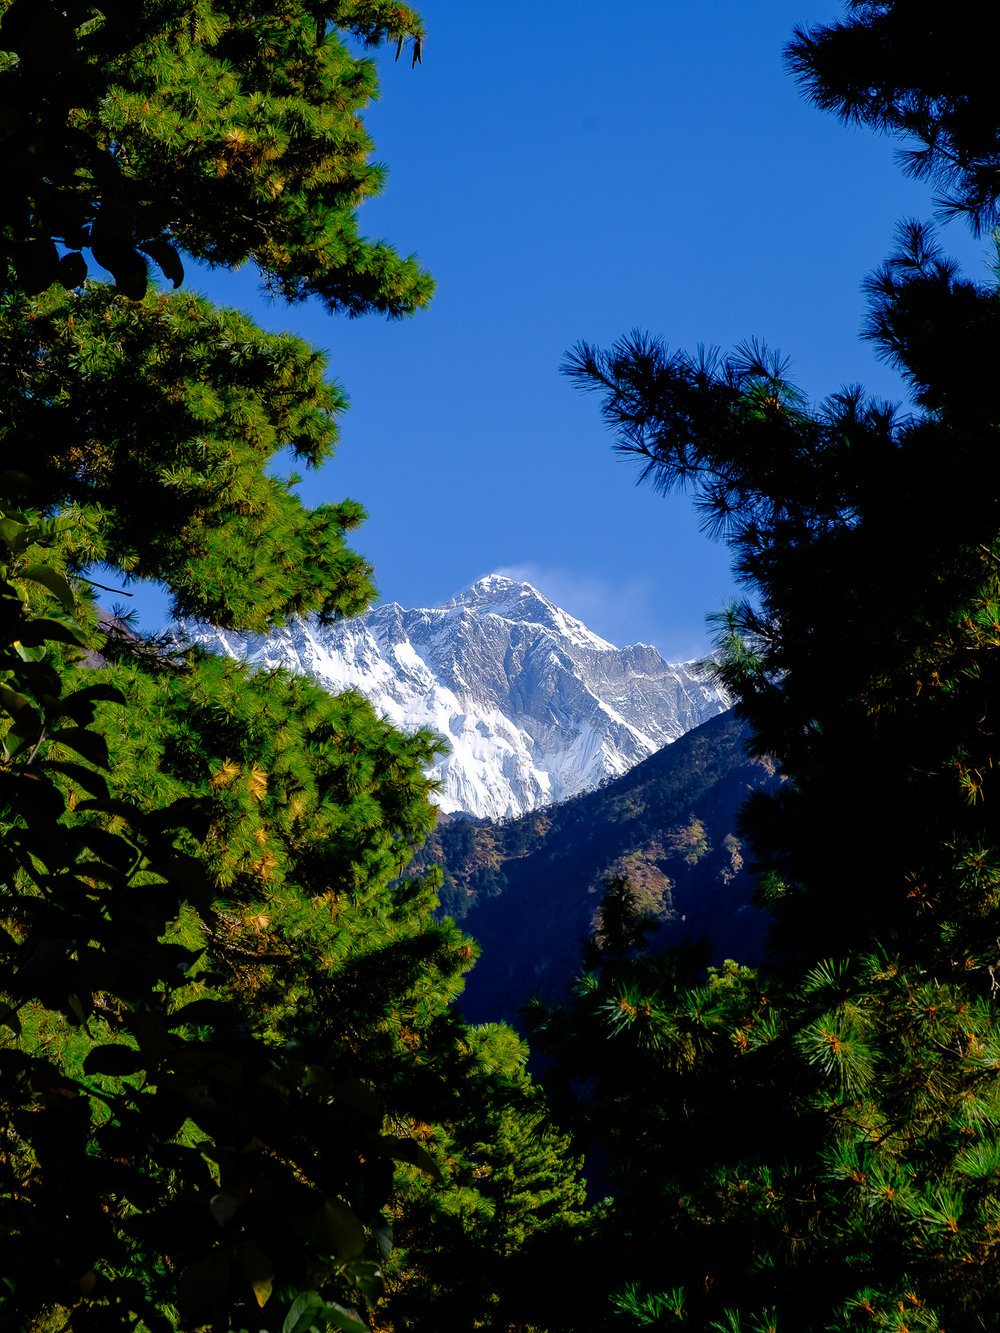 Last viewpoint where Everest was still visible